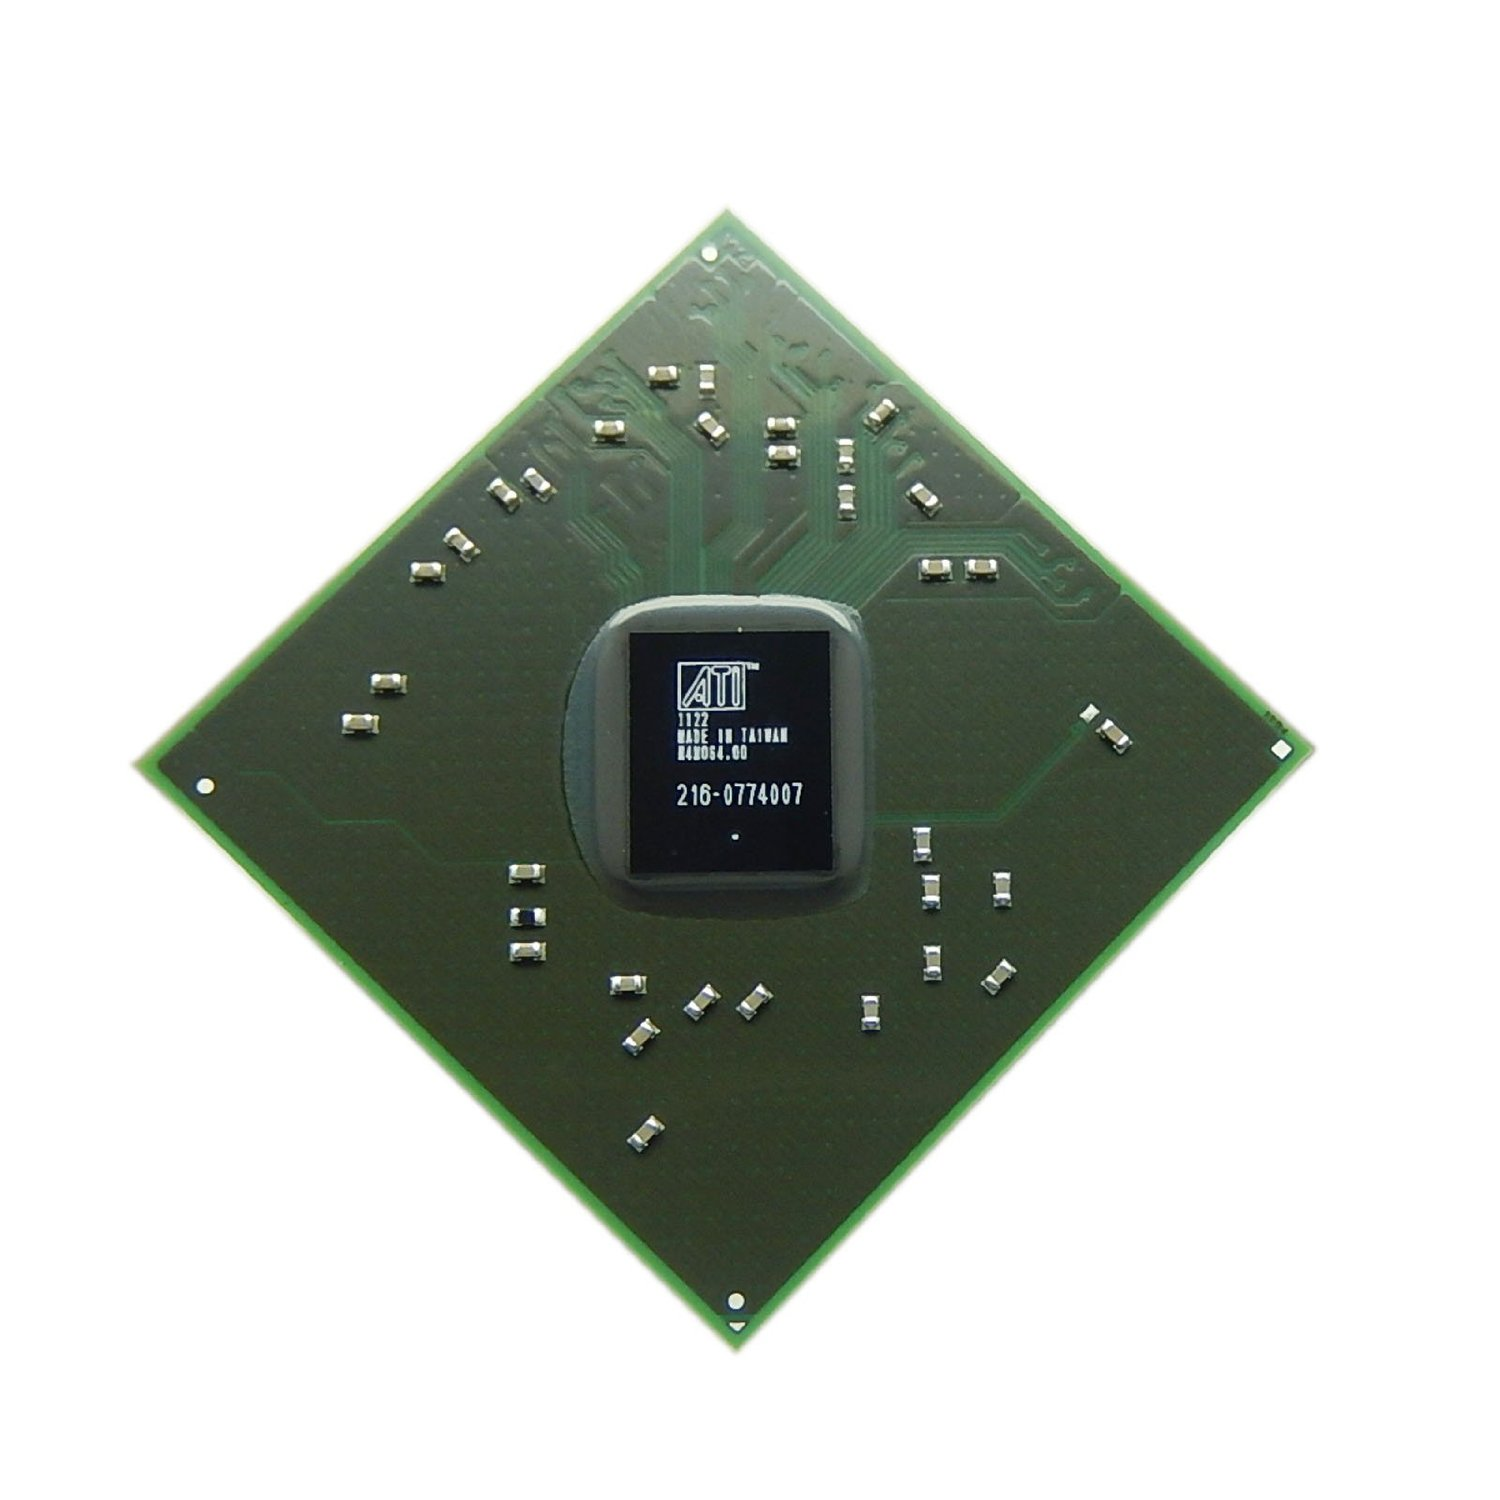 Cheap Amd Chips 216 0674026 Data Sheet Of Ic, find Amd Chips 216